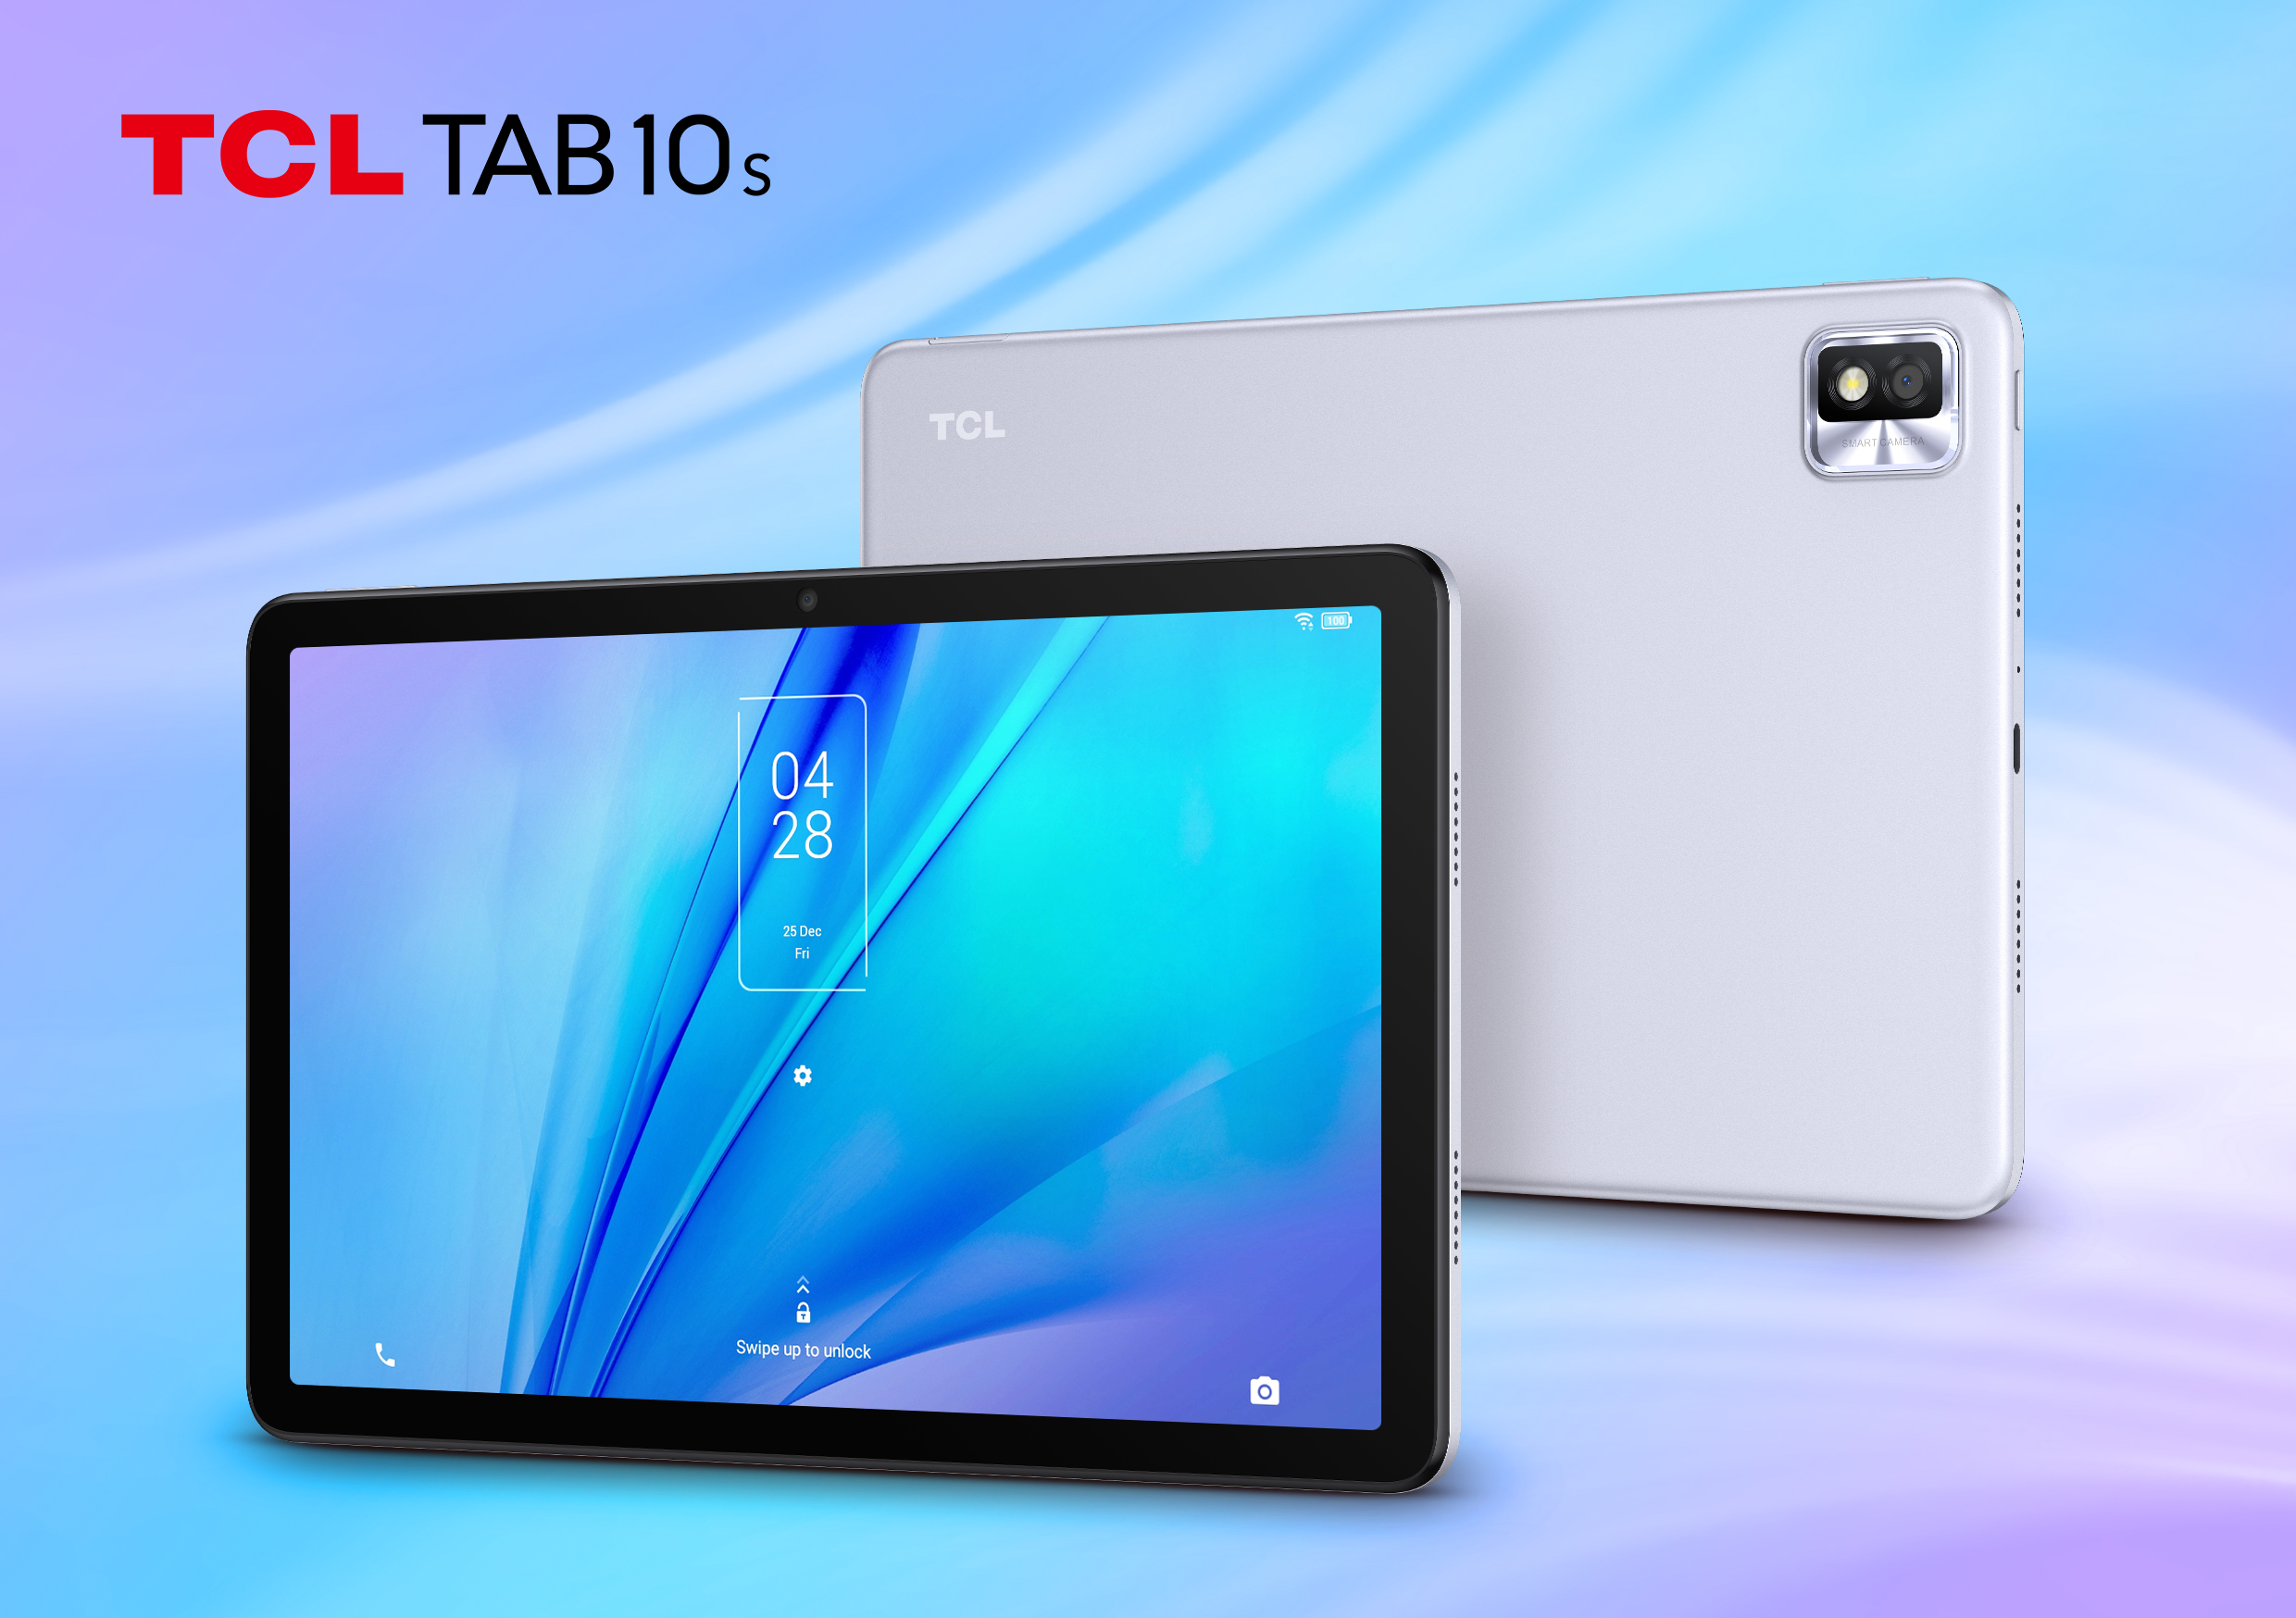 TCL TAB 10S Android tablet in Silver colorway